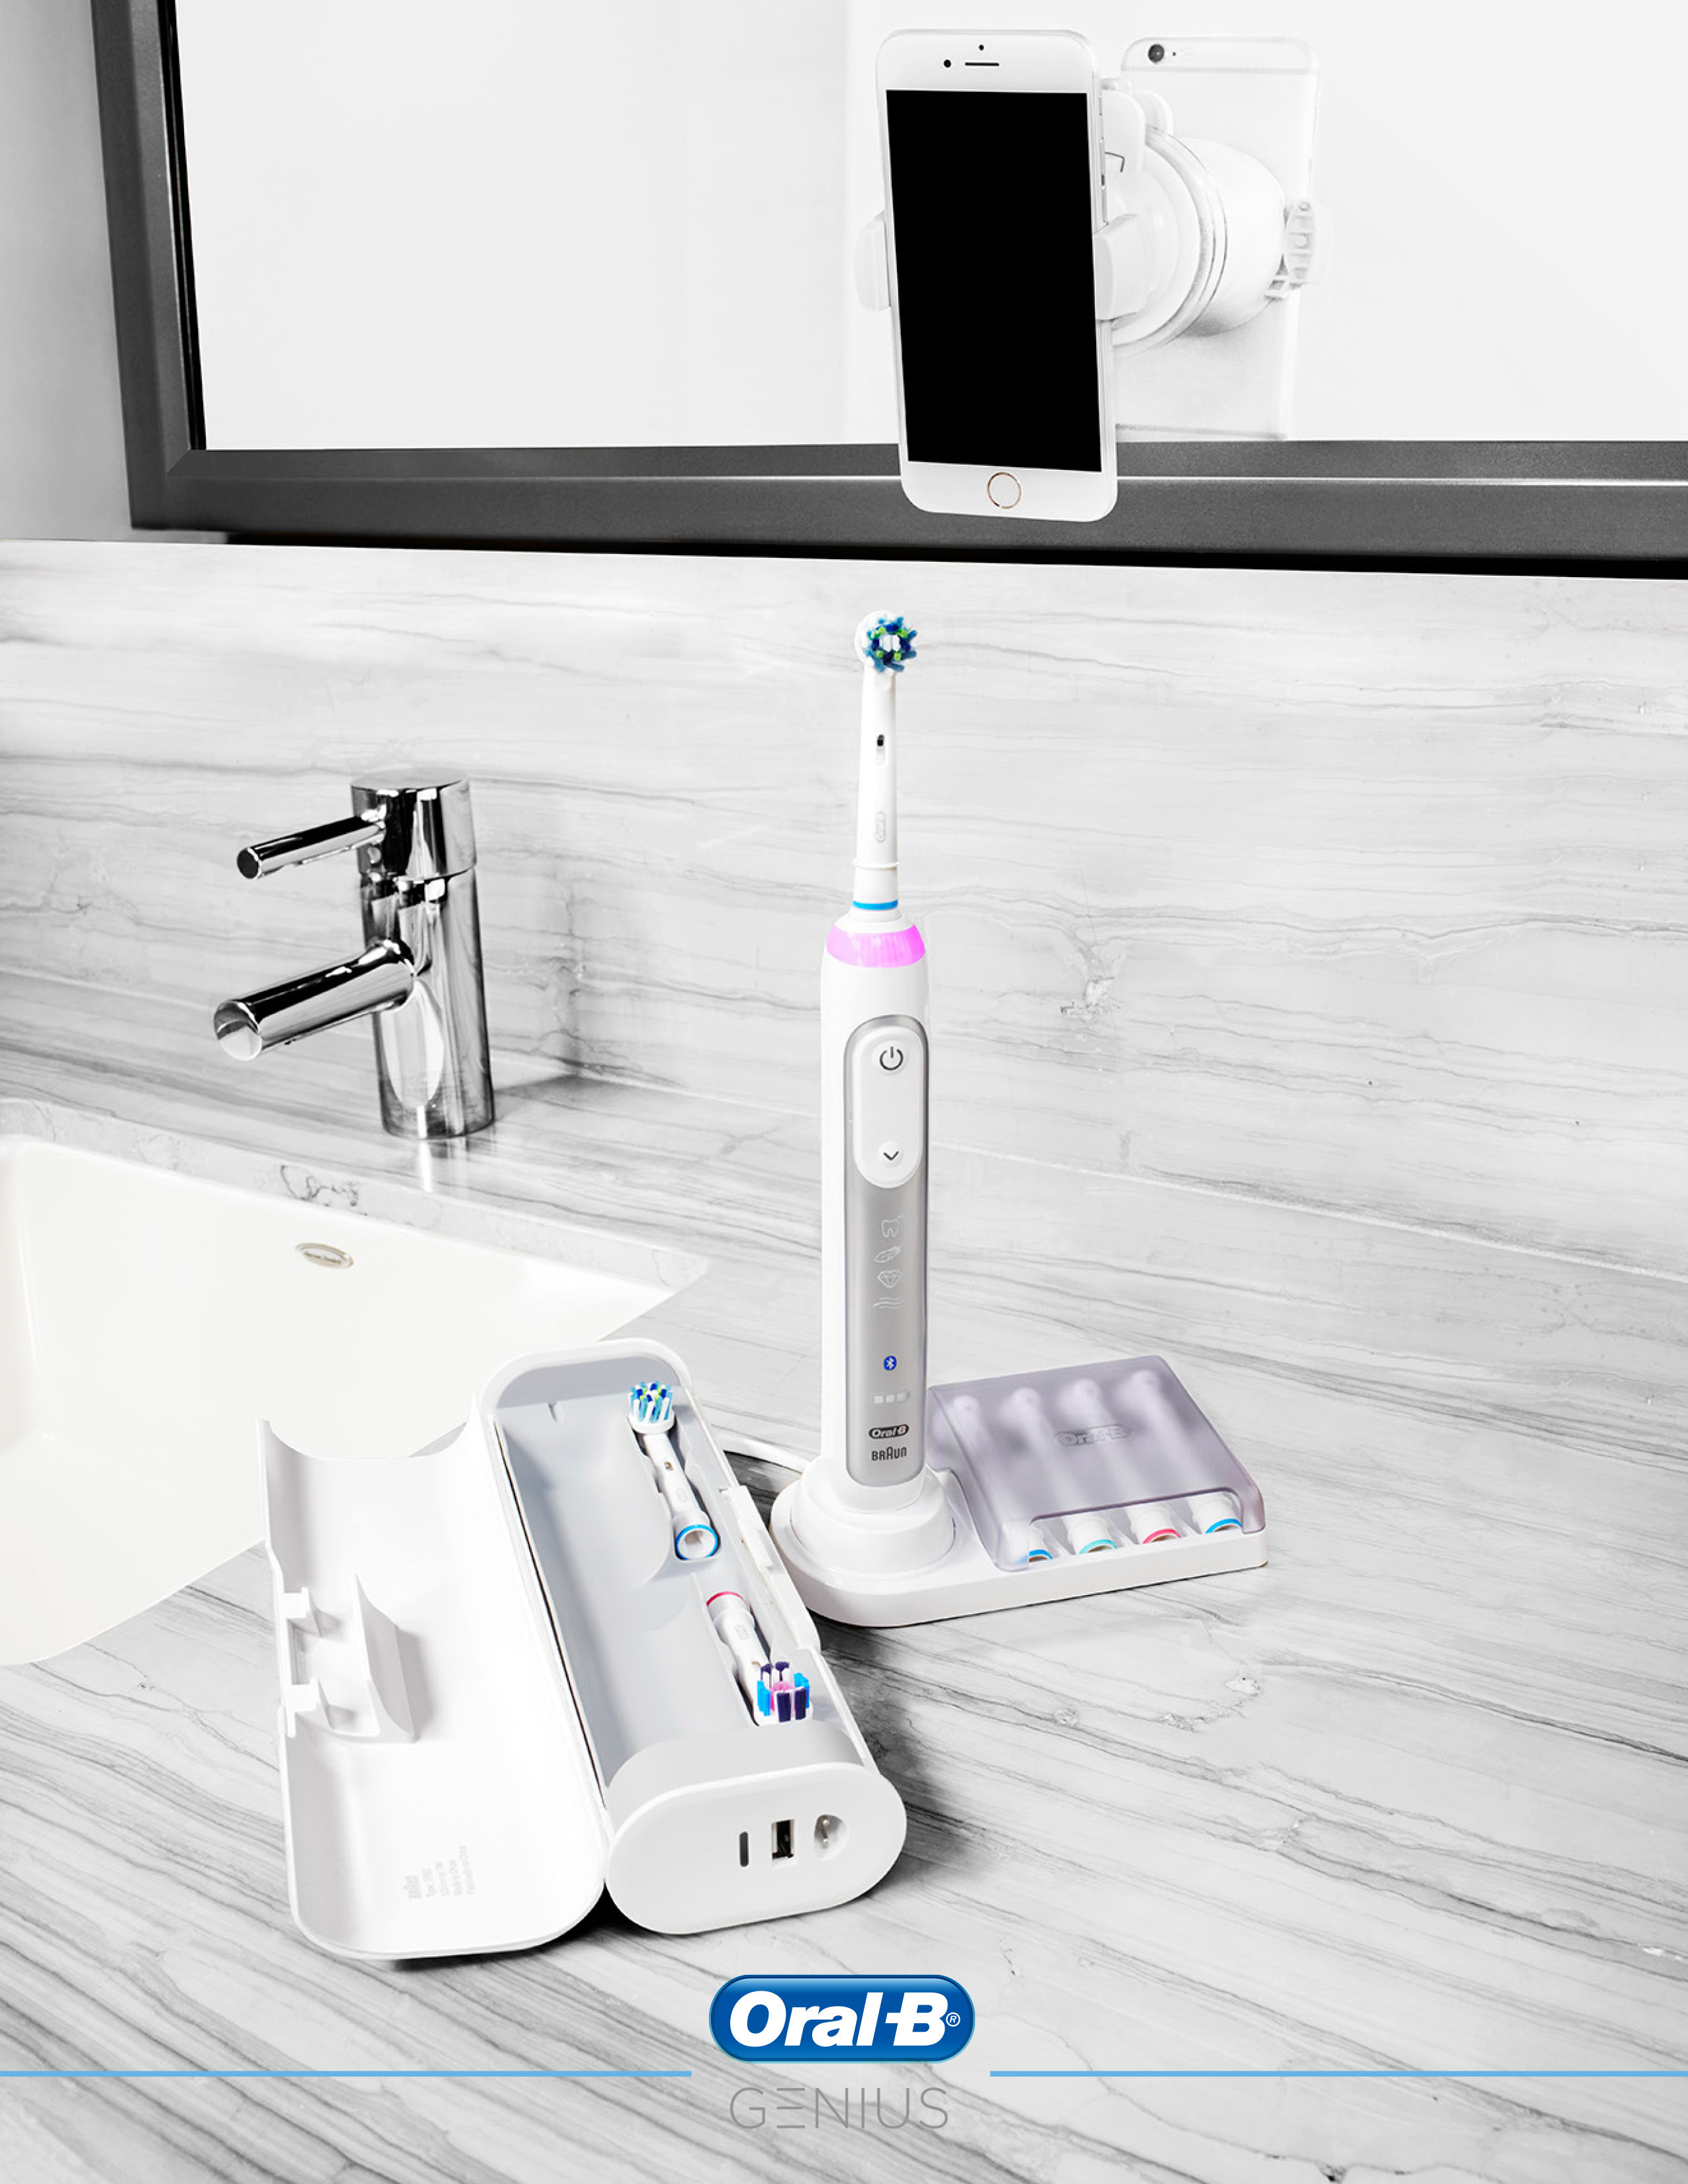 So Smart, It's GENIUS – Oral-B Unveils the World's First